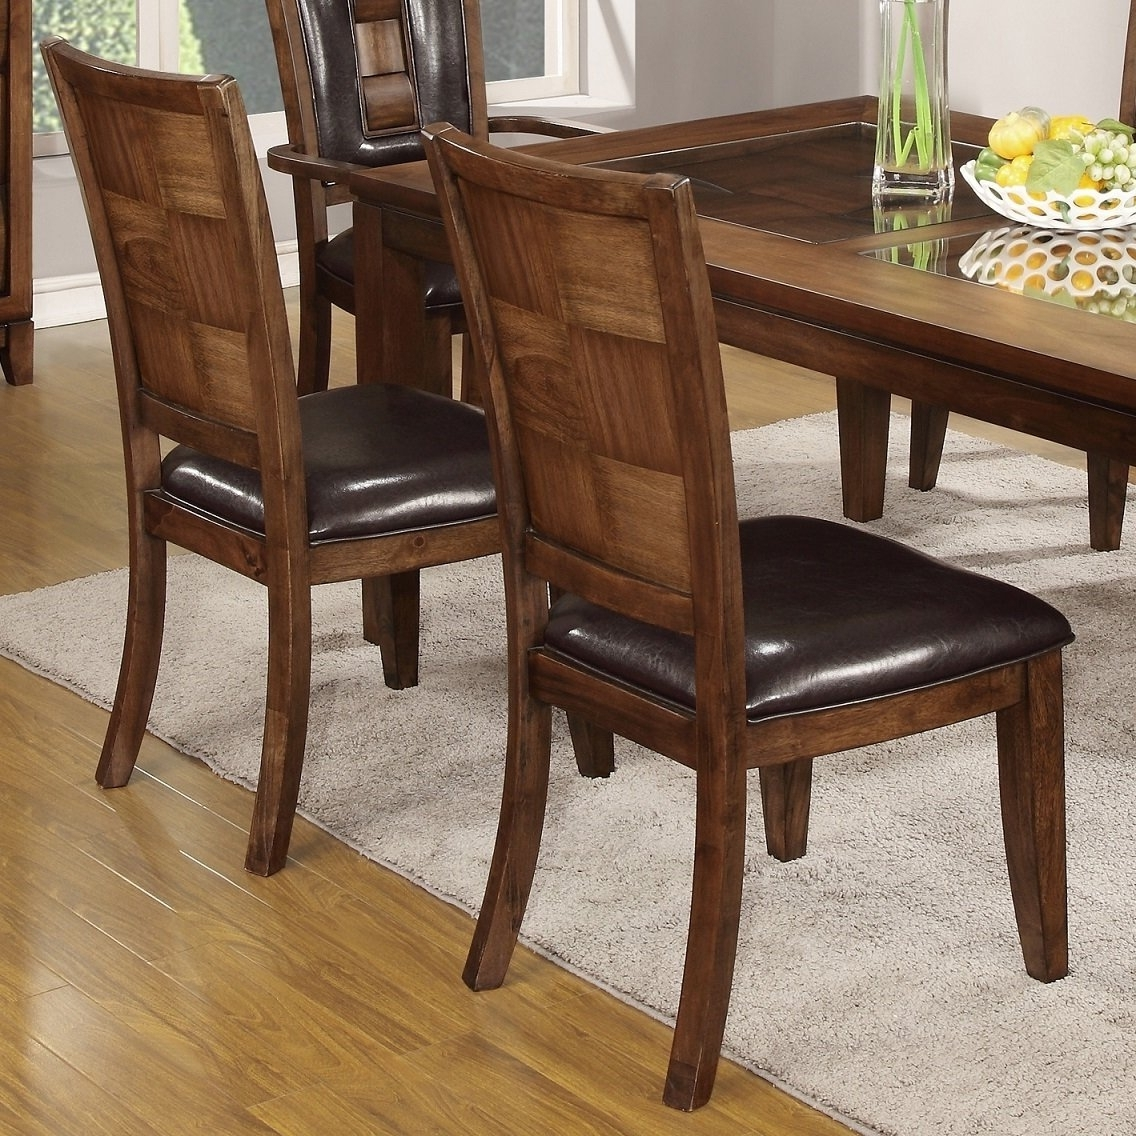 Favorite Shop Calais 7 Piece Parquet Finish Solid Wood Dining Table With 6 Regarding Parquet 7 Piece Dining Sets (View 9 of 25)